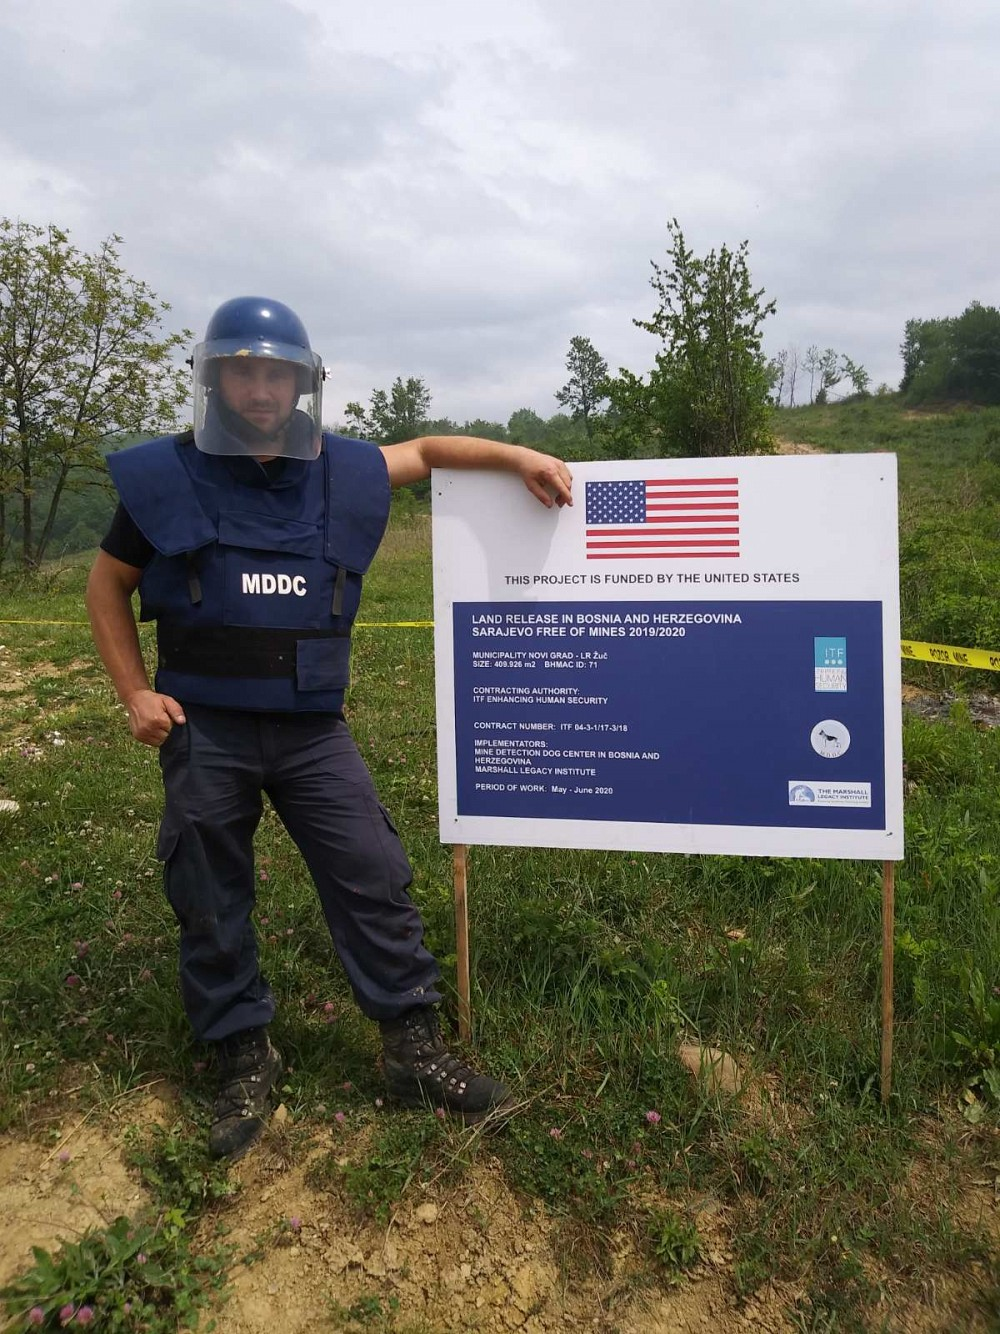 Mine Free Sarajevo, a United States-funded project, has reached an important milestone